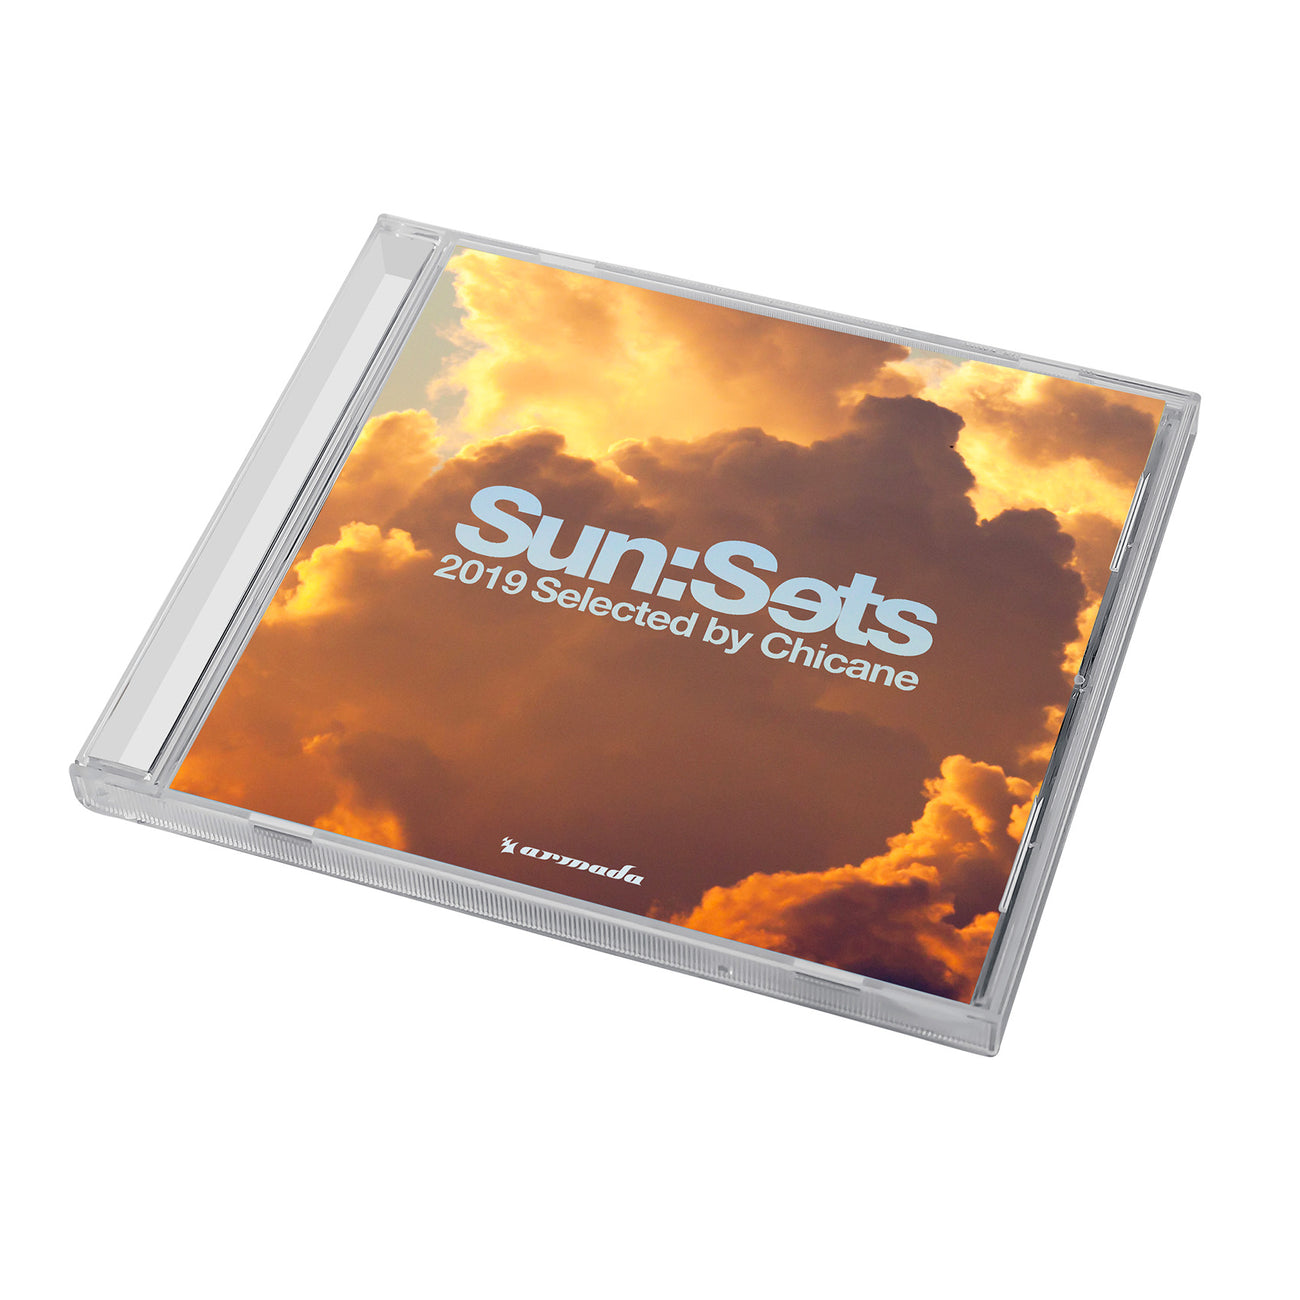 Chicane - Sun:Sets 2019